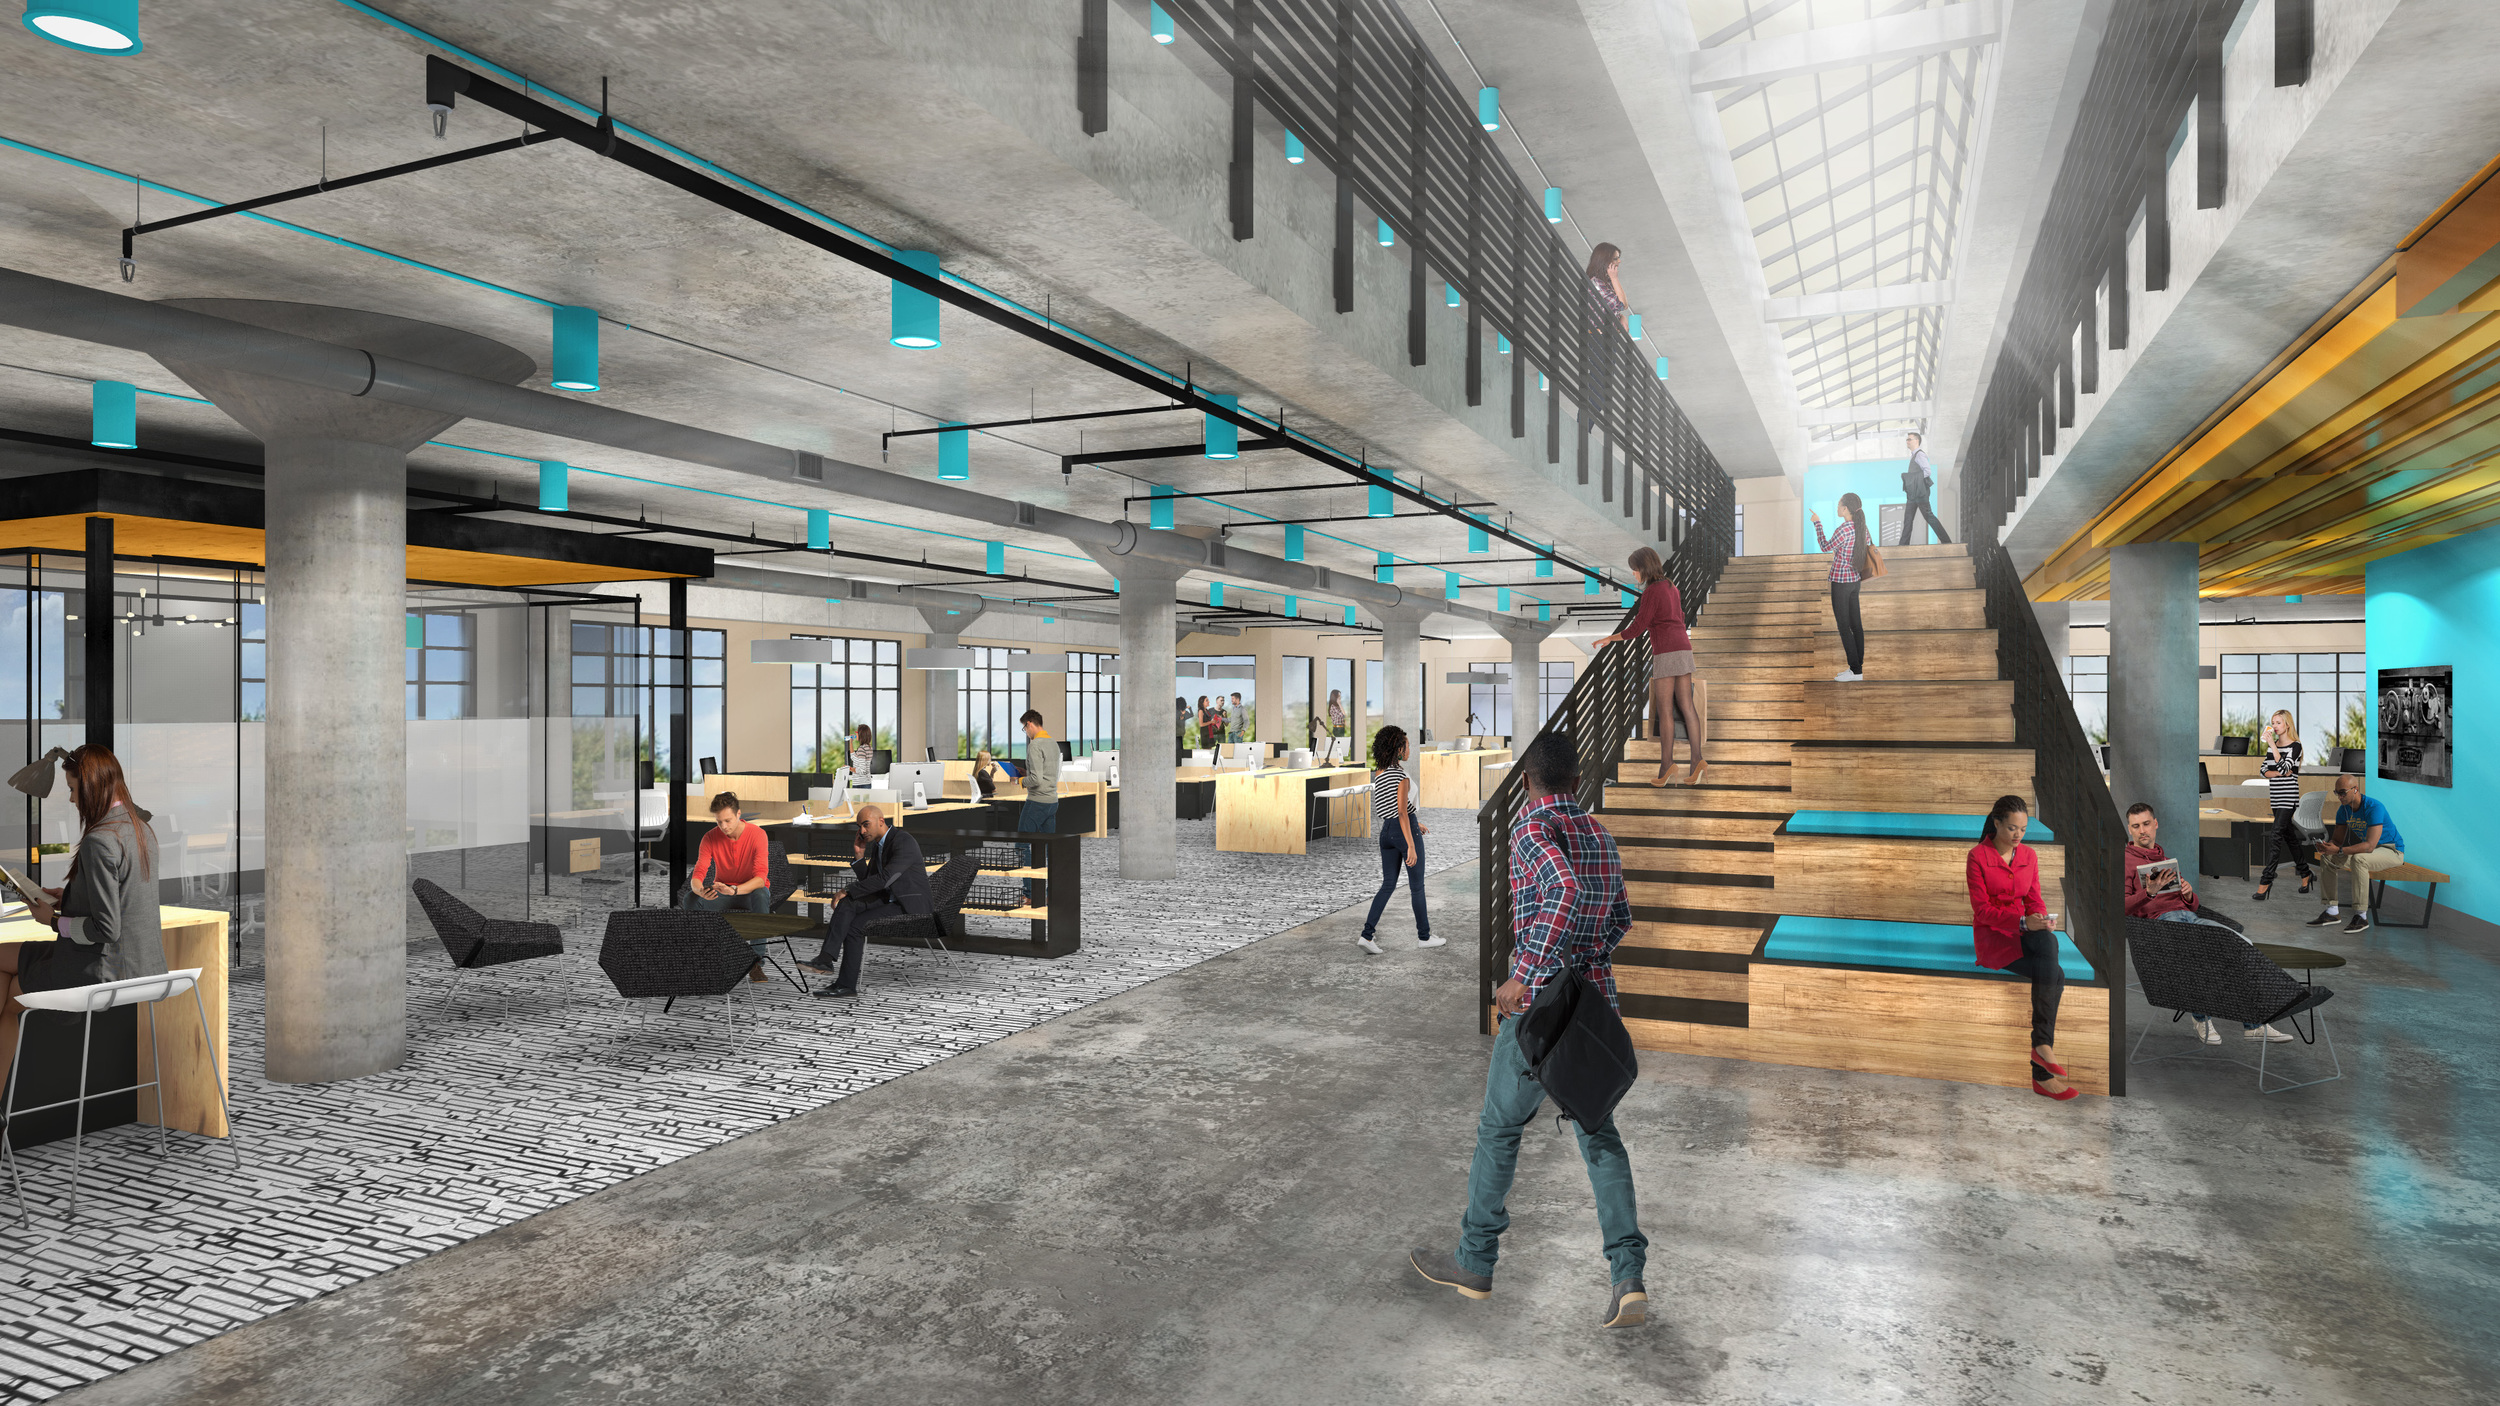 The Foundry is designed to attract the creative class and businesses looking for an alternative to Downtown Austin.